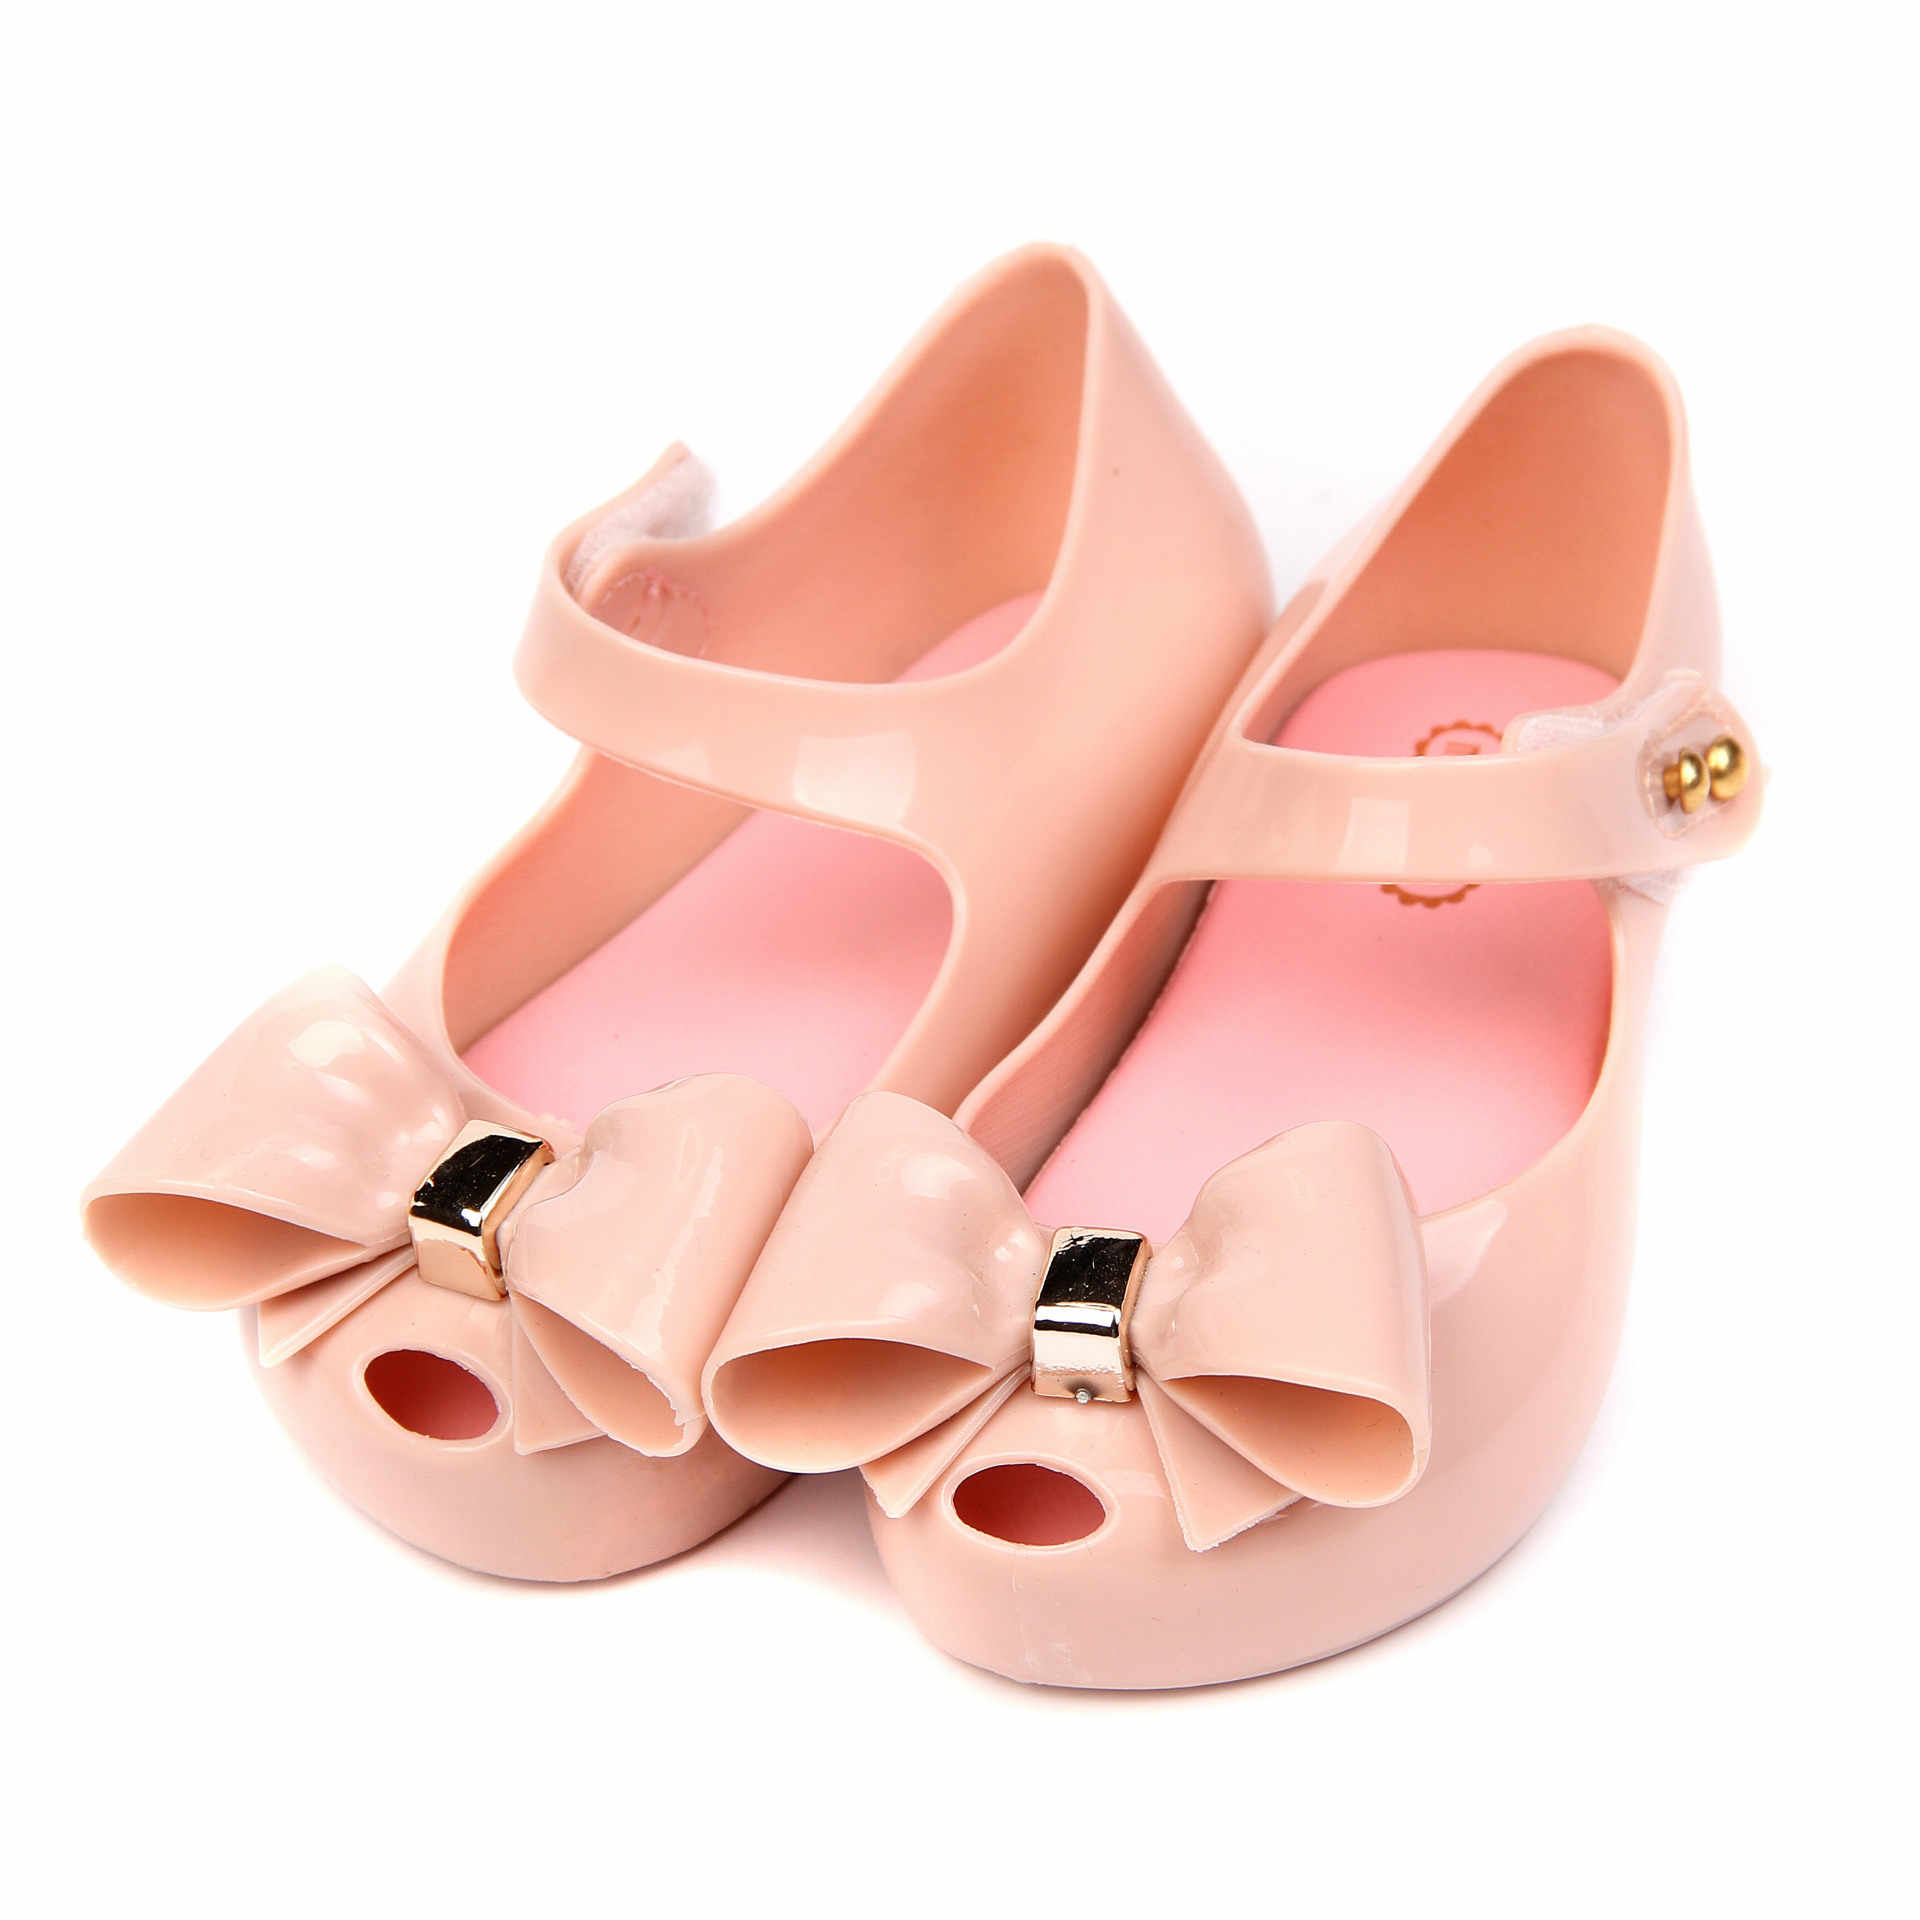 a76fdf26352a Melissa Jelly Shoes Mini Bowtie Girls Sandals 2018 PVC Bow Soft Comfort Kids  Sandal Shoe Water